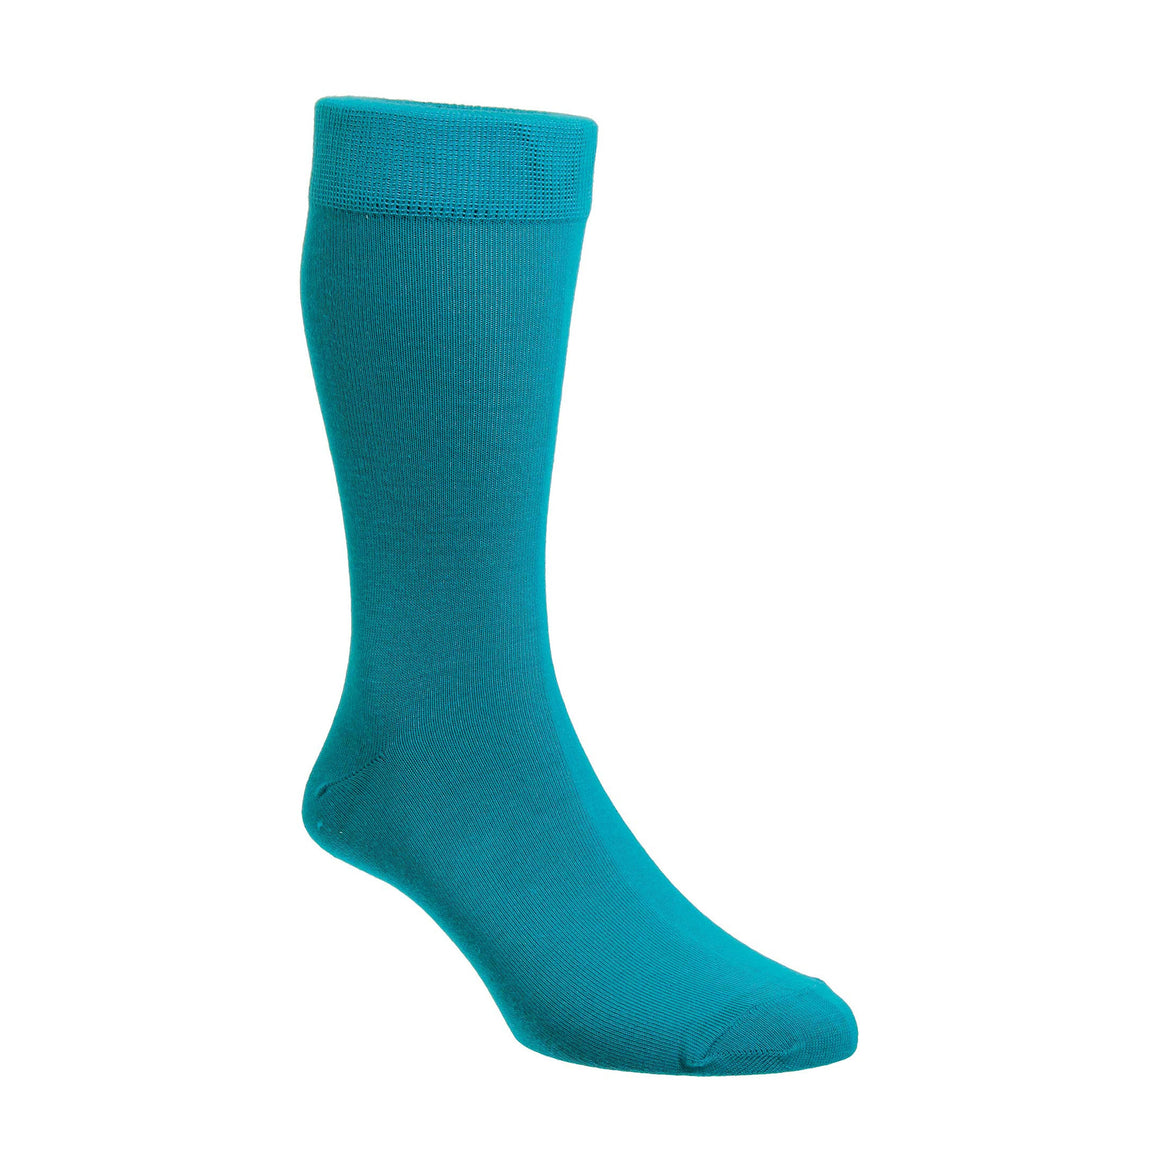 HJ593 Socks for Men in Aqua